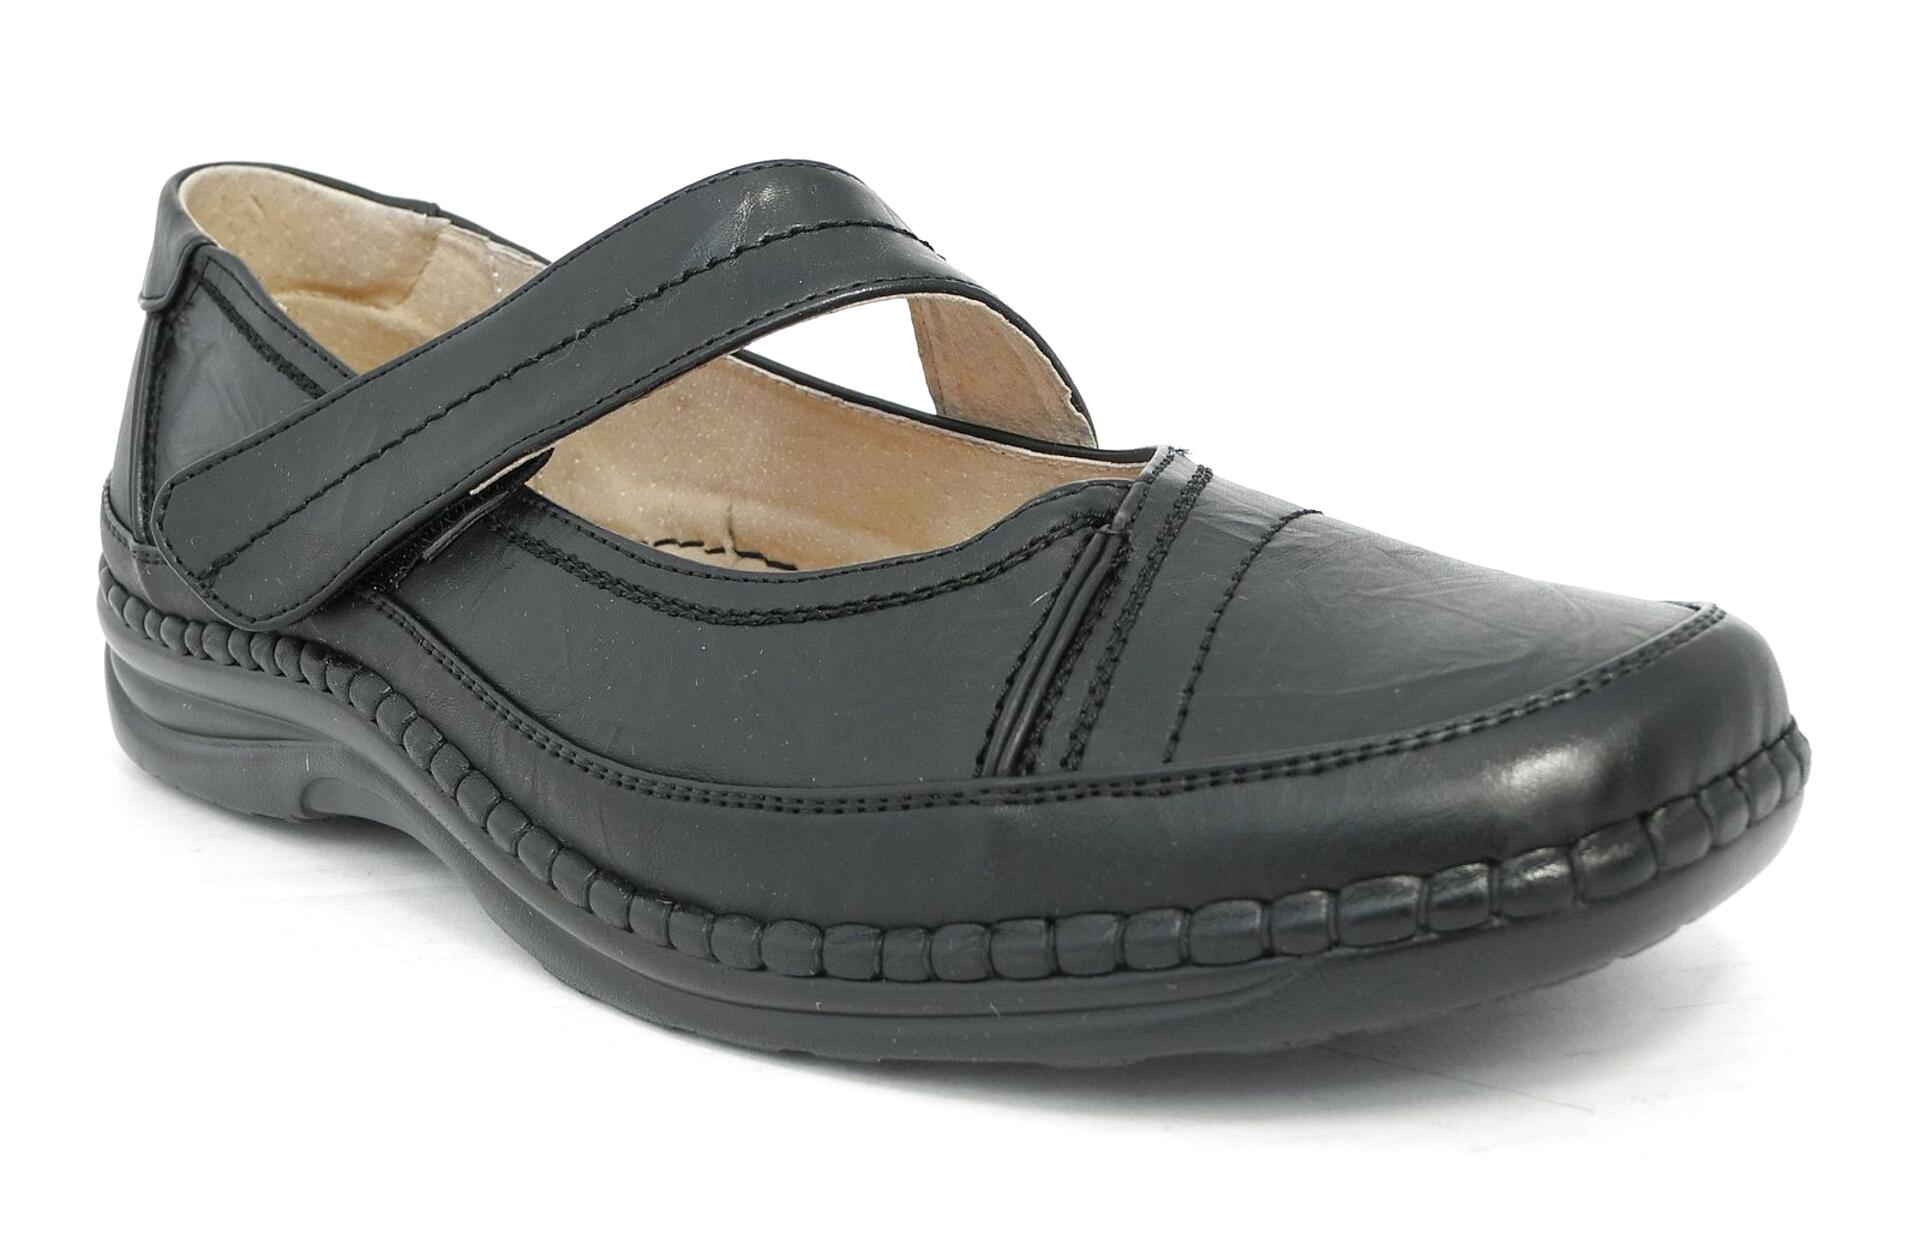 eee wide fit shoes for sale